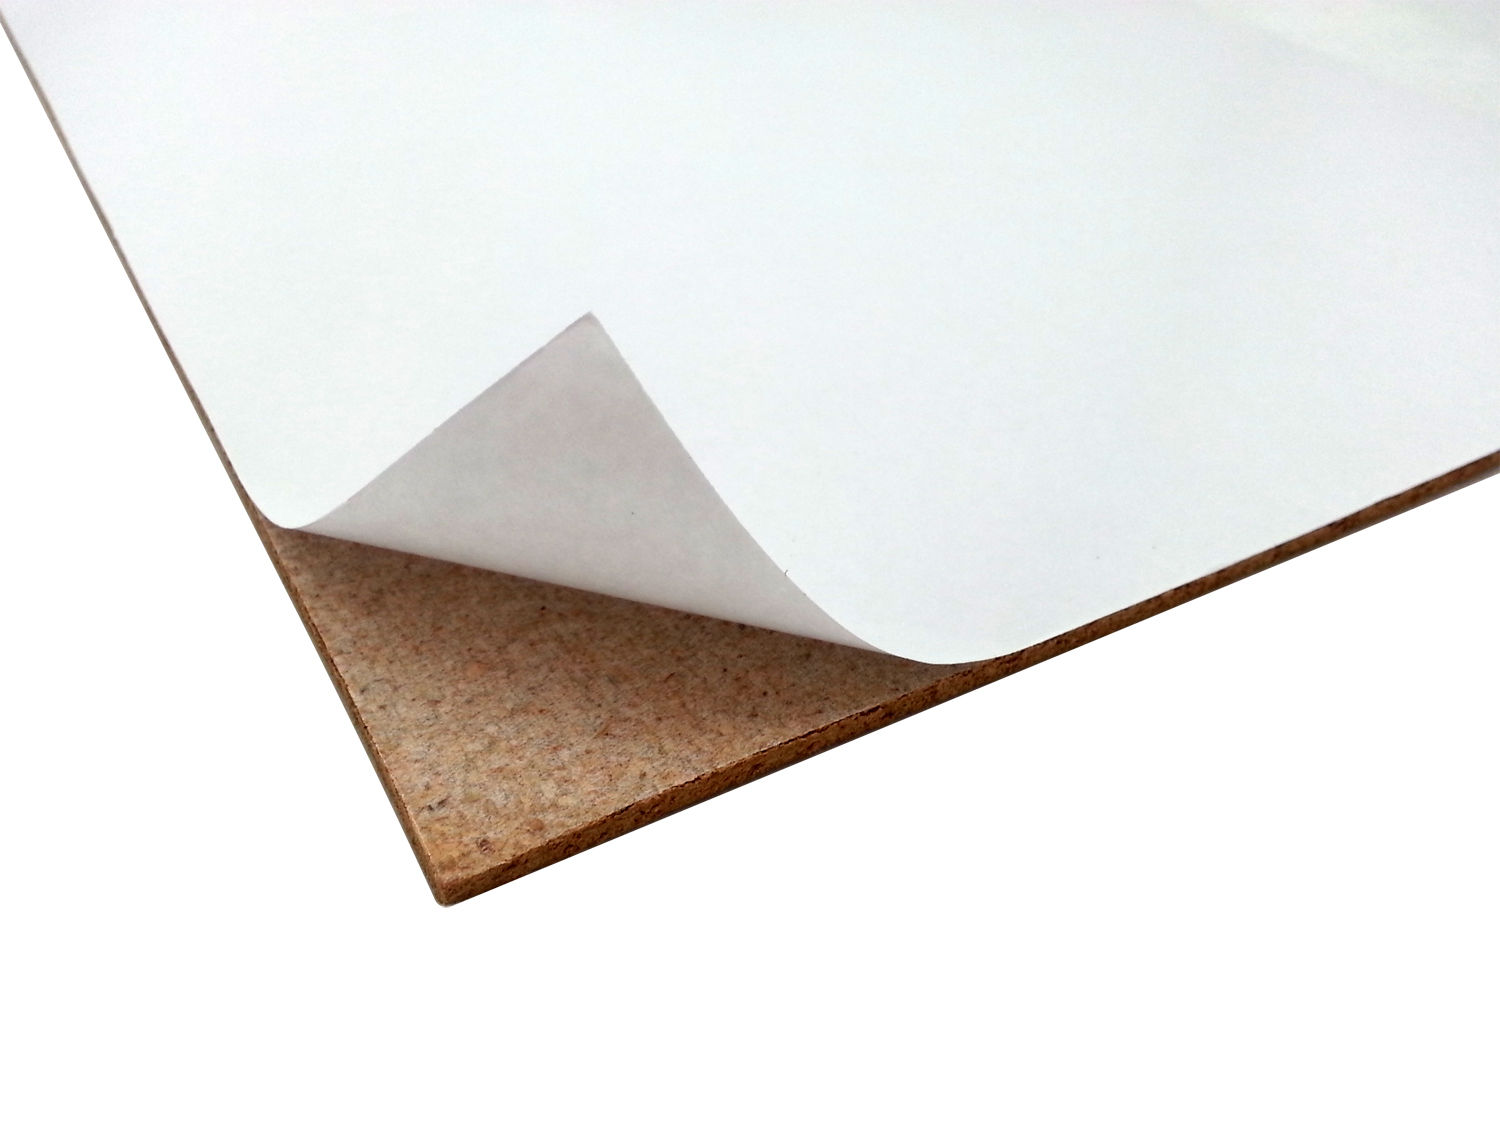 Self adhesive cork floor tiles